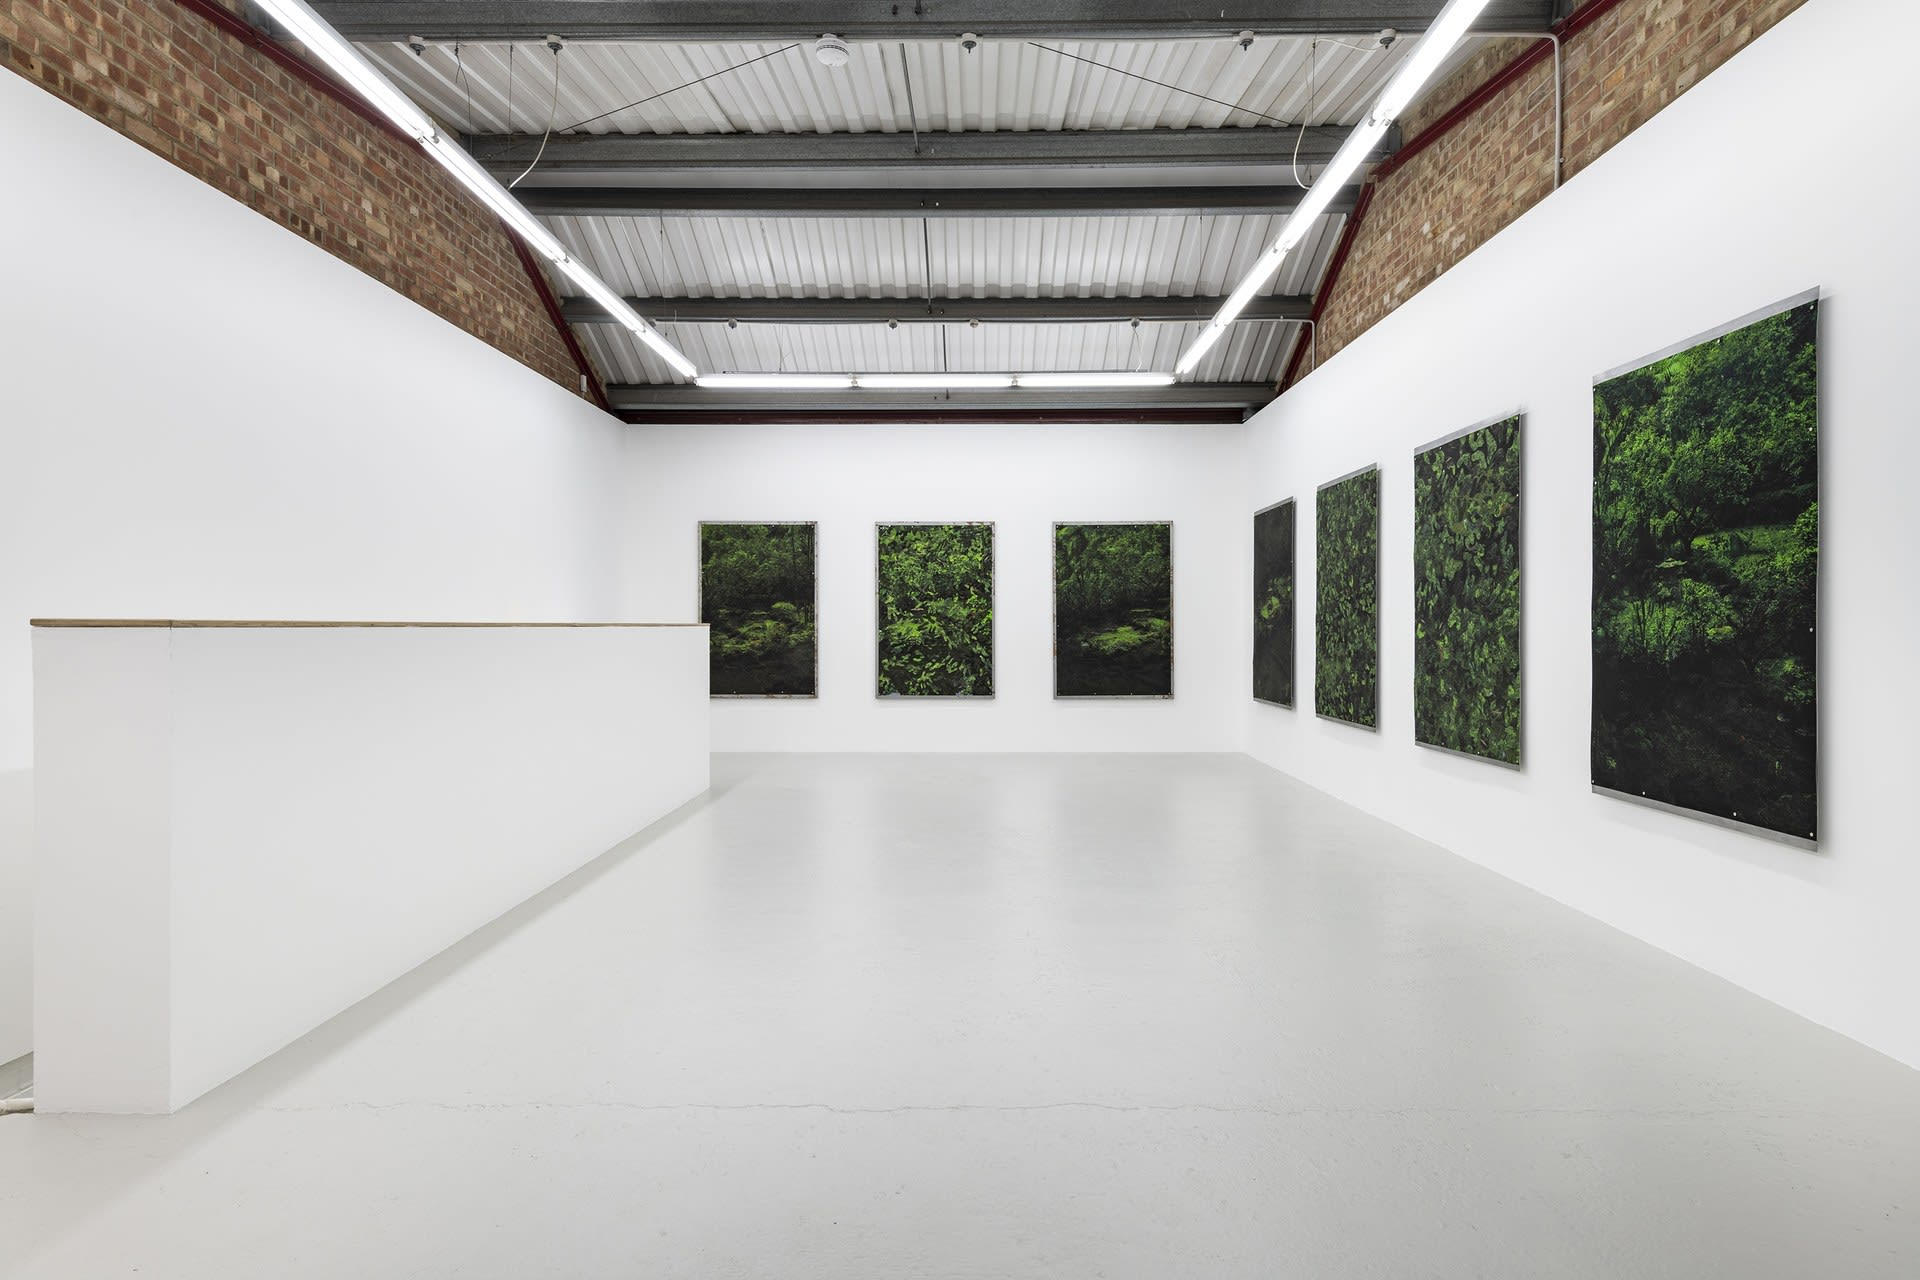 Exeunt, Installation View at Annka Kultys Gallery, London, 2020